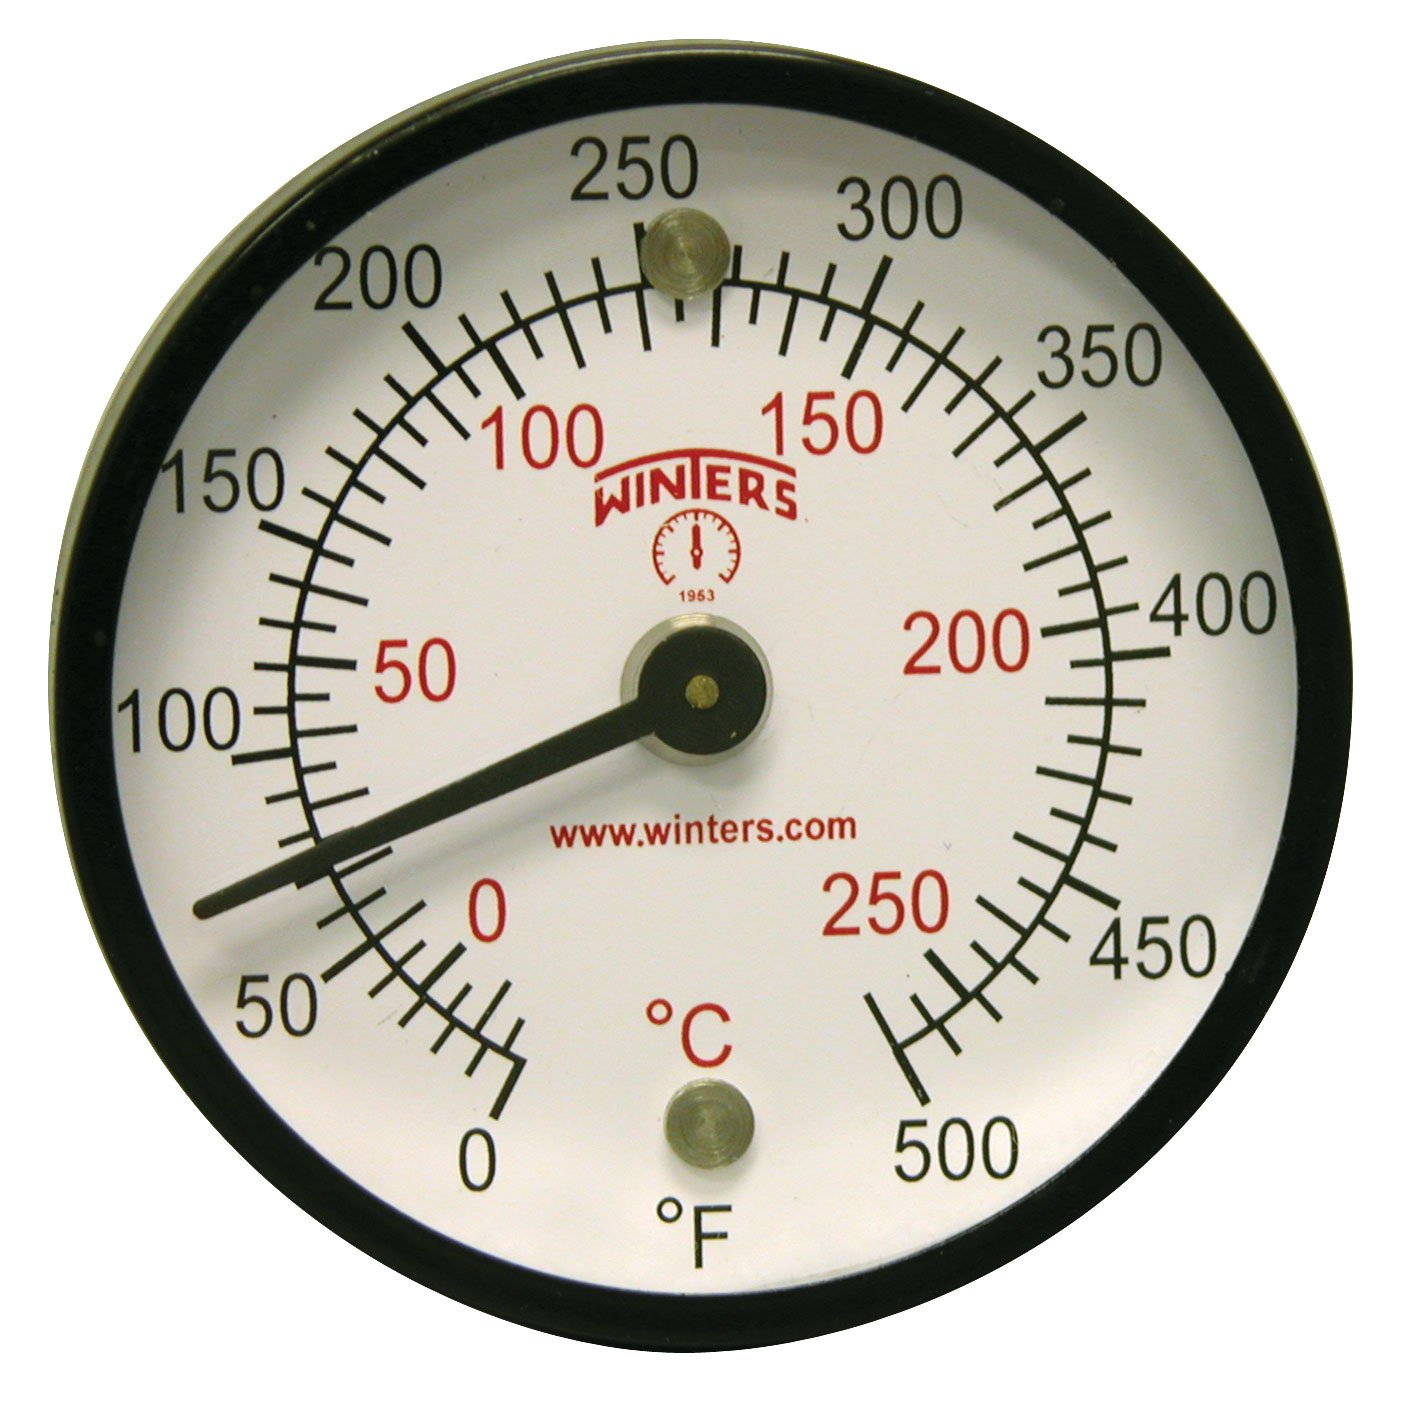 Winters TMT Series Steel Dual scale Surface Magnet Thermometer, 2' Dial Display, +/-2% Accuracy, 0-500 F/C Range 2 Dial Display TMT7410